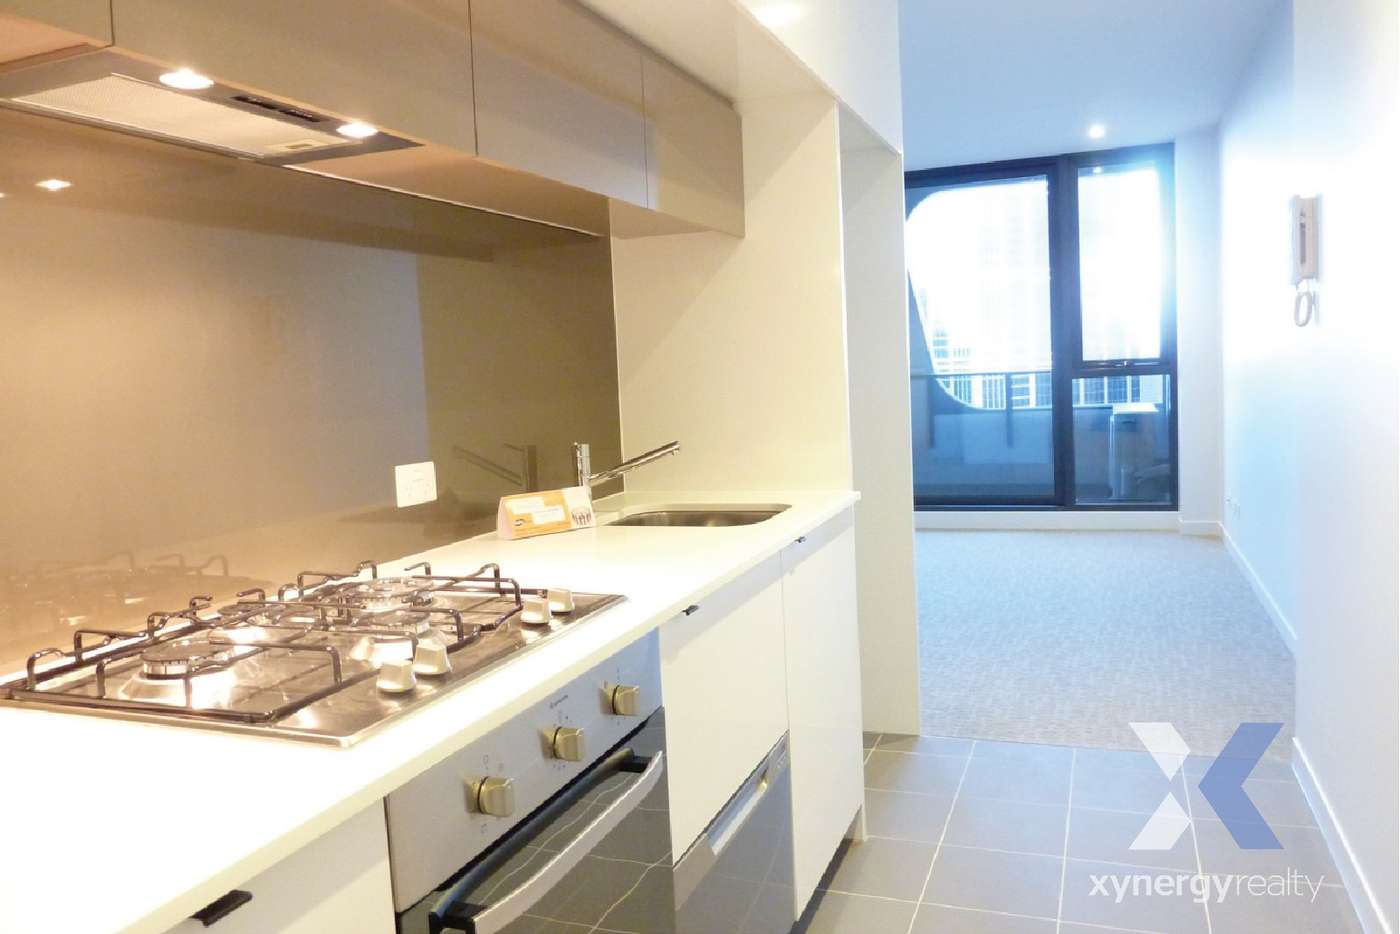 Main view of Homely apartment listing, 1707/80 A'Beckett Street,, Melbourne VIC 3000